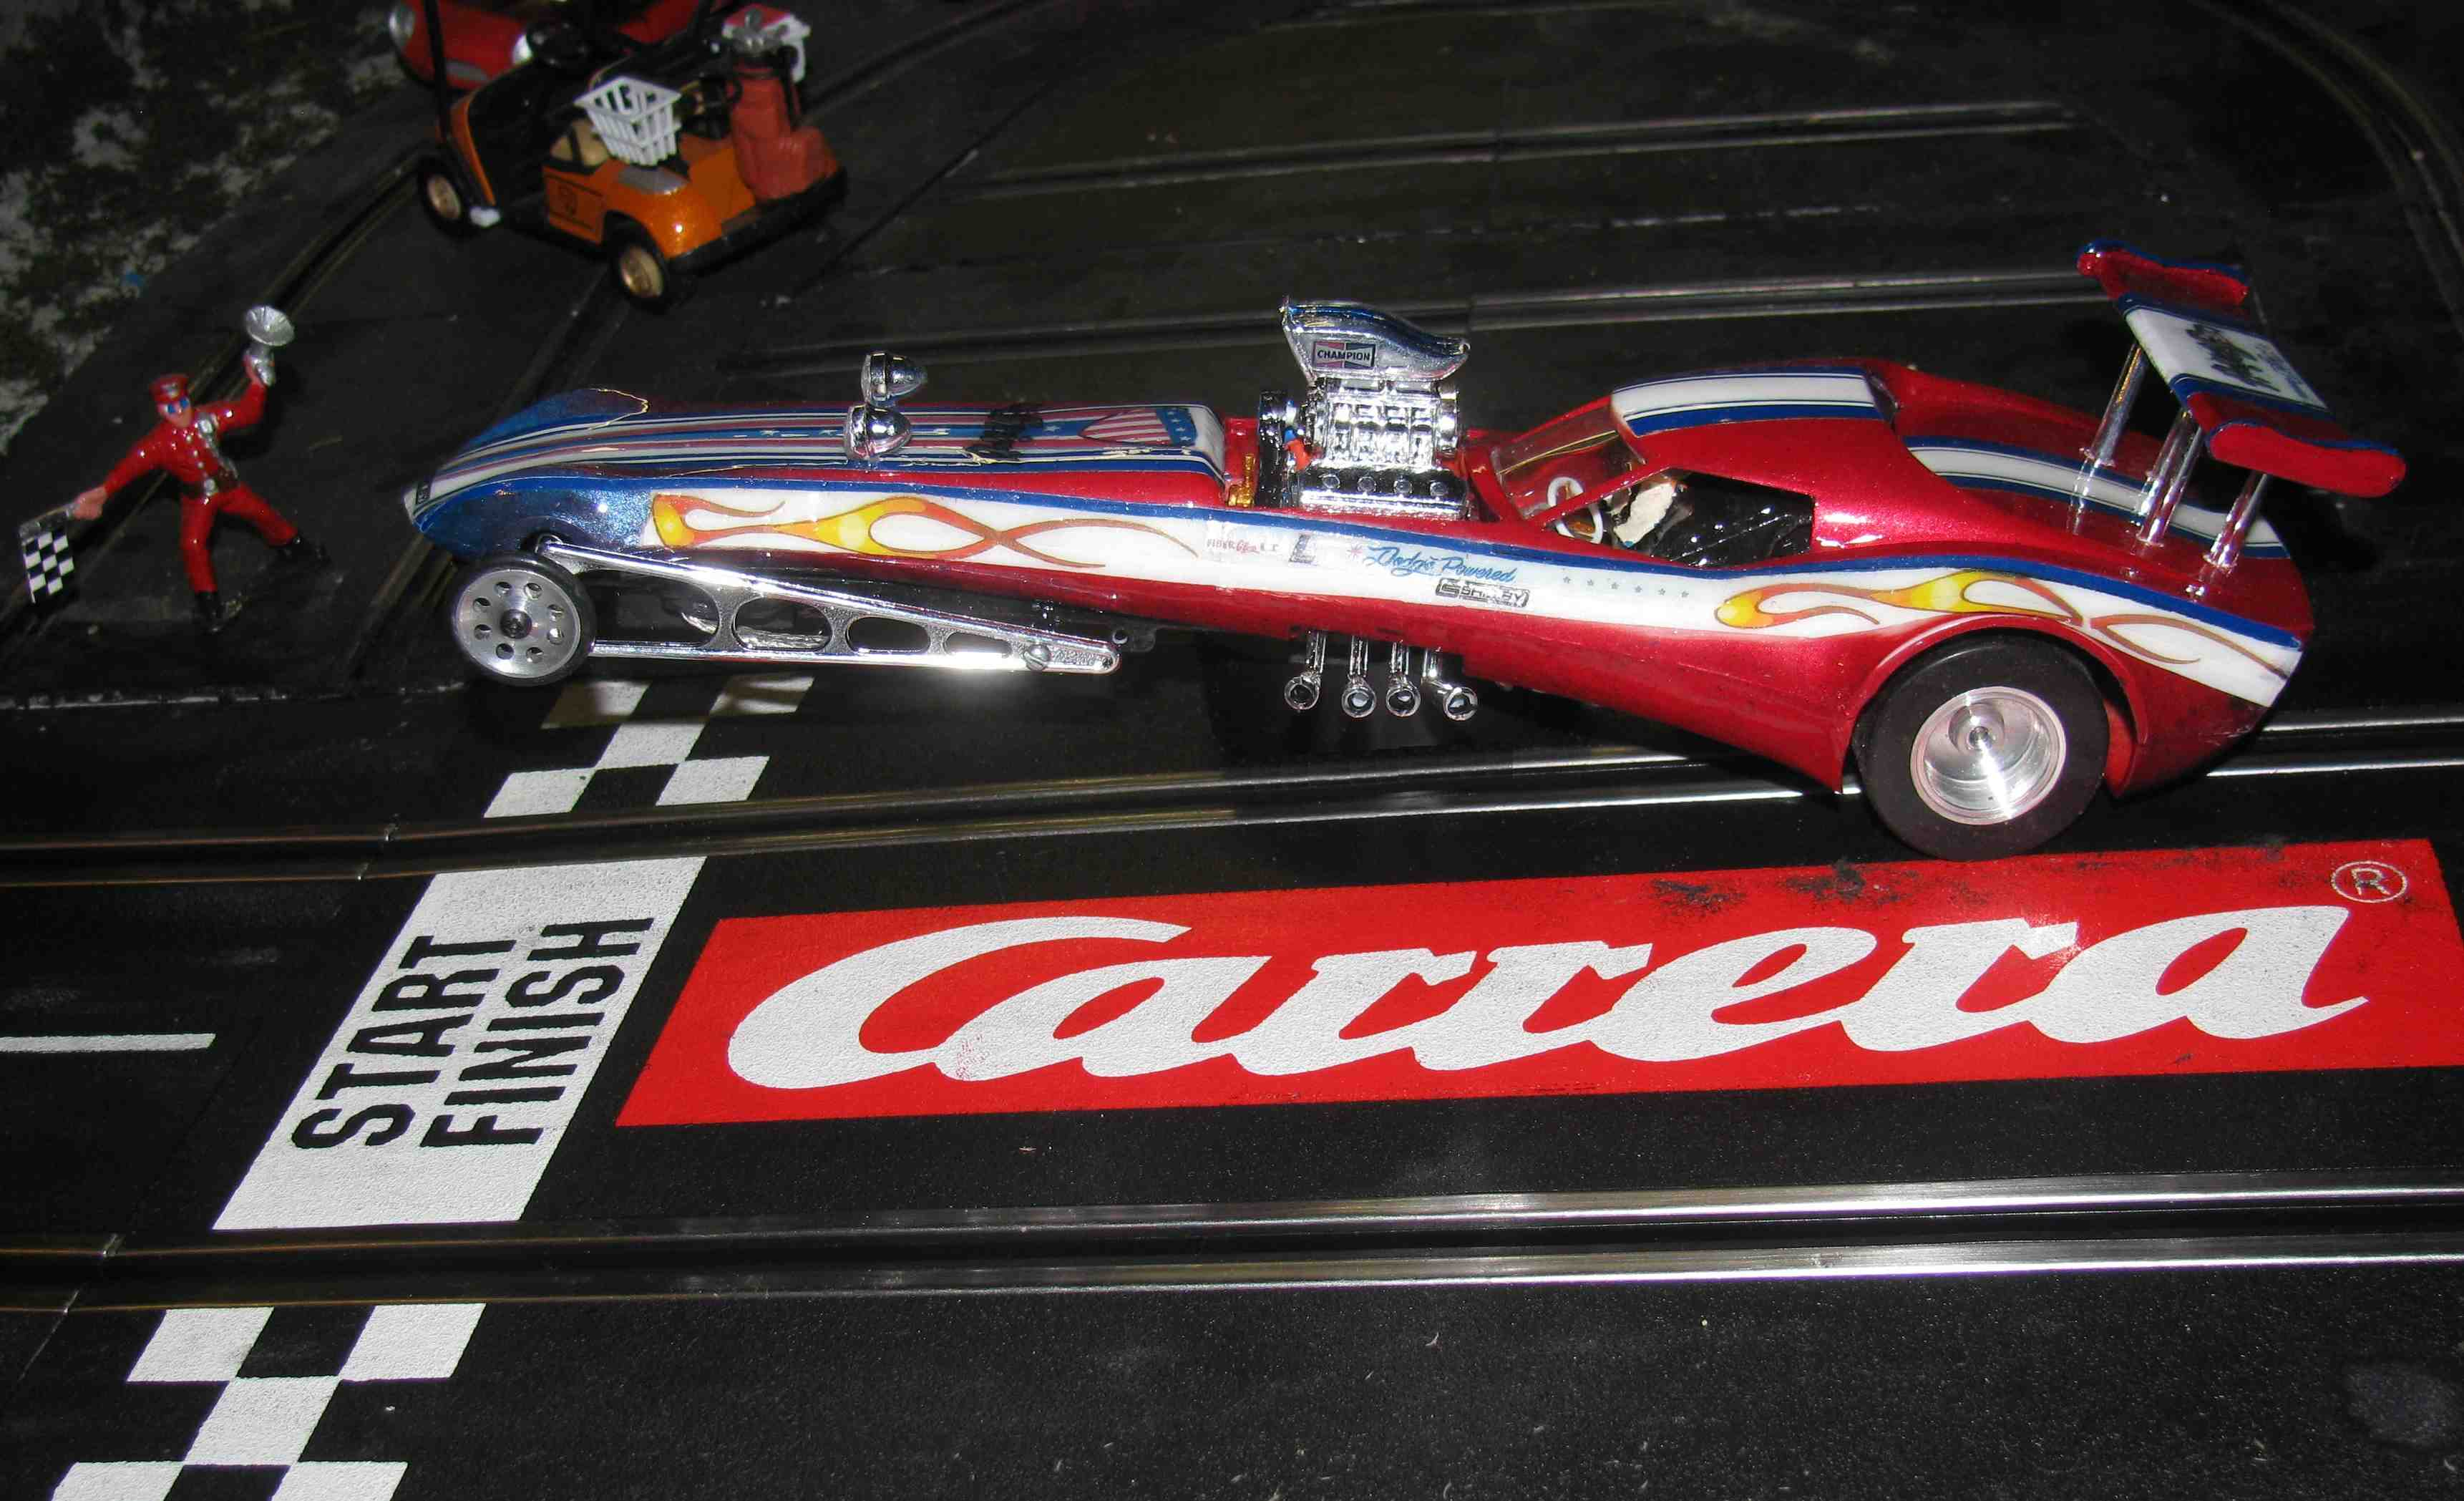 * SORRY YOU MISSED OUT ON THIS ONE - SOLD * The Spirit of 76' Custom Dragster - Slot Car - 1/24 Scale